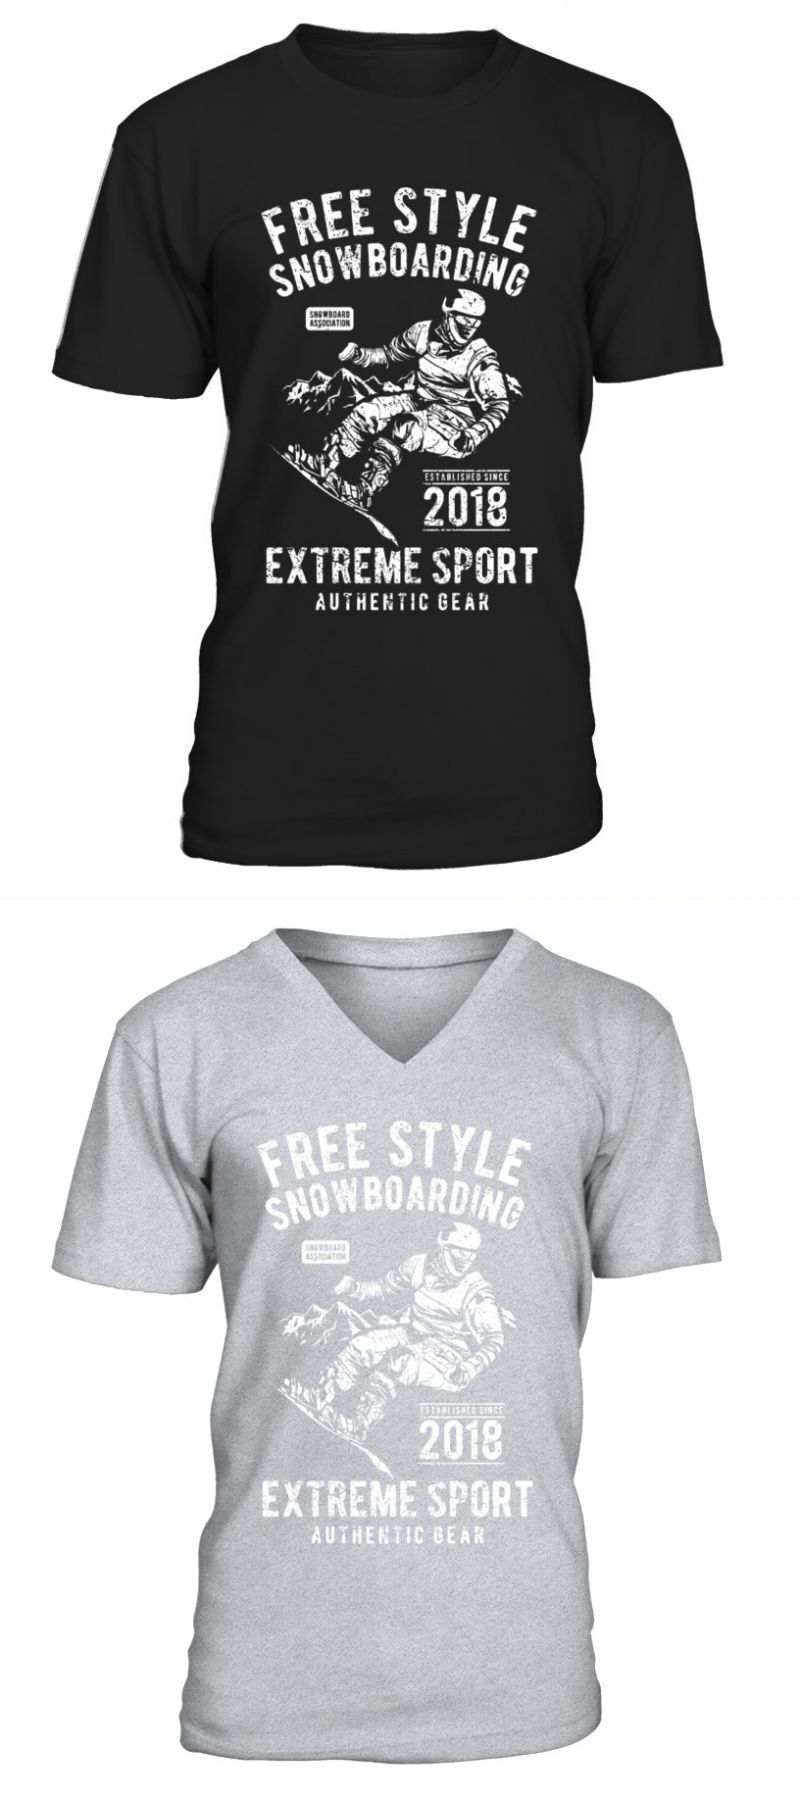 Arts Mixed Snowboarding Martial Style Free And Shirt Crafts gwx6ZCw7q